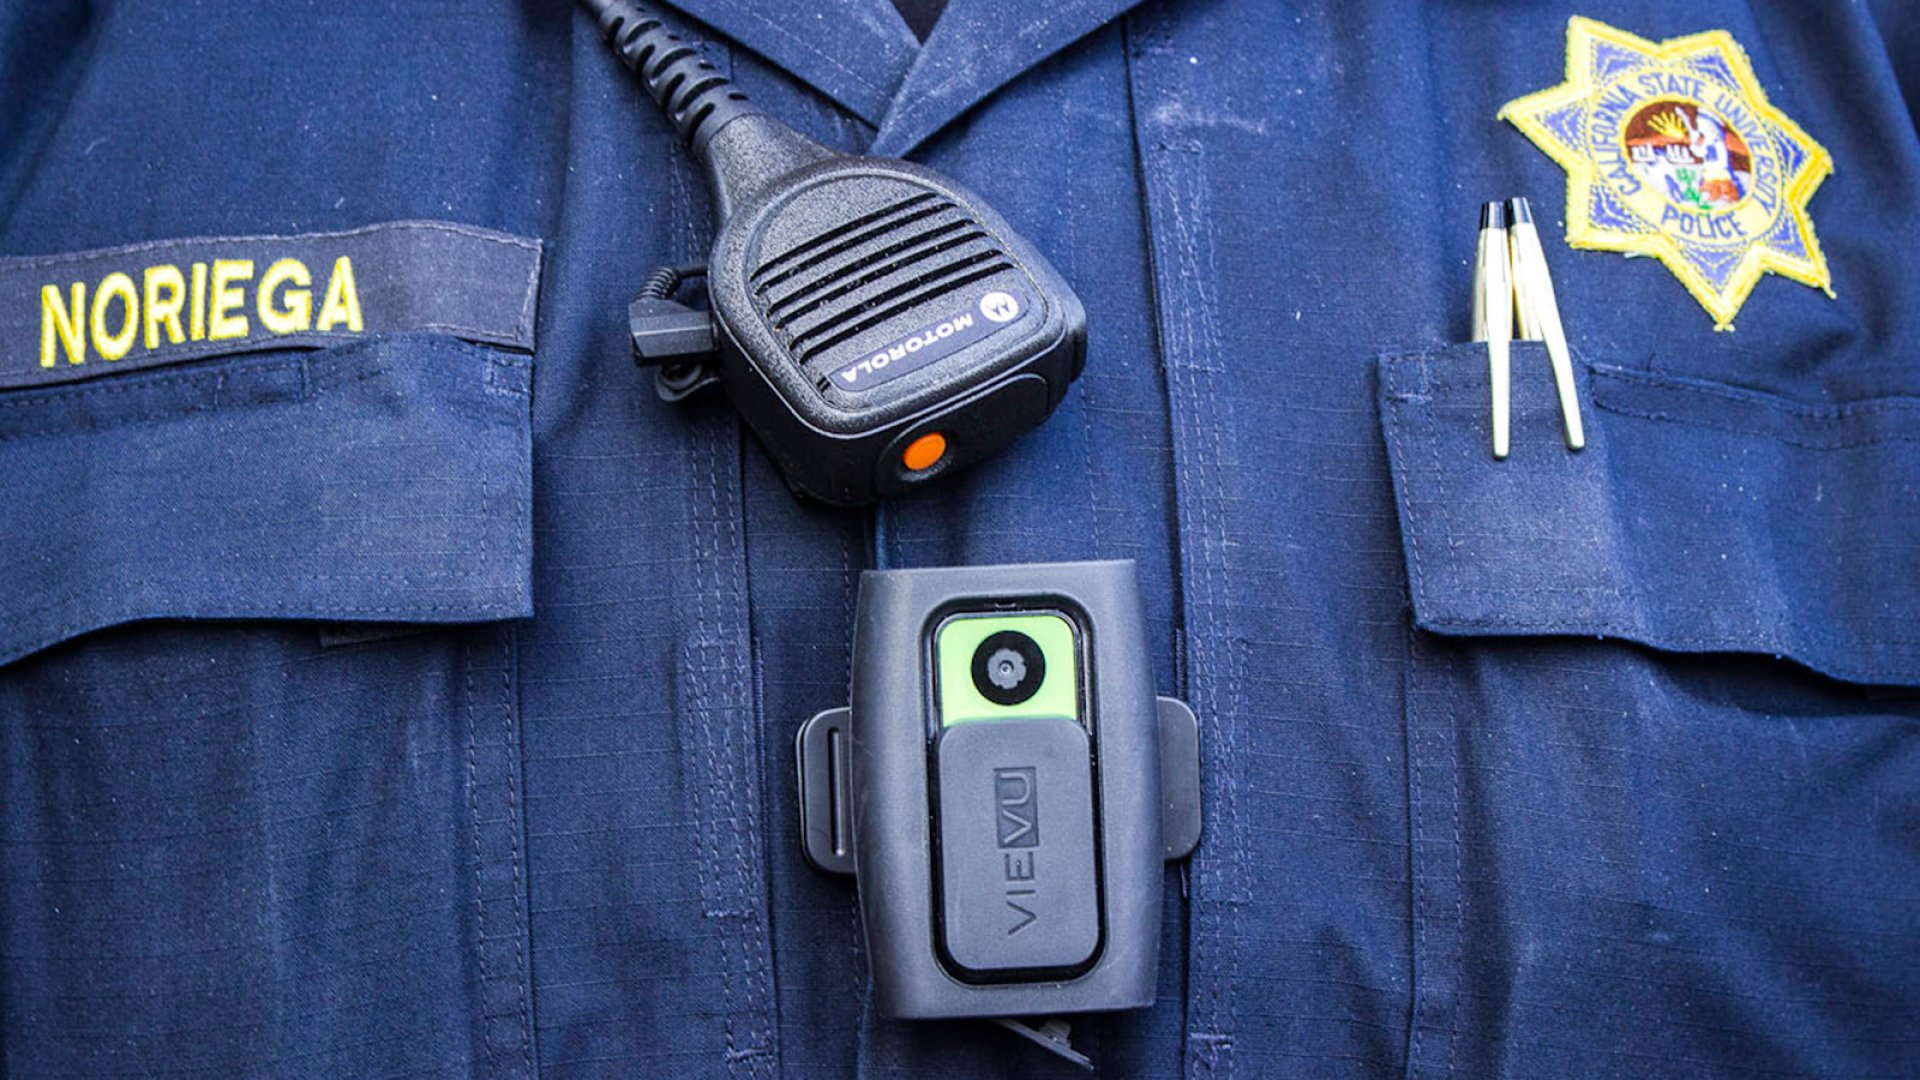 With the Acquisition of VieVu, the Police Body Camera Business Shows Its Heat